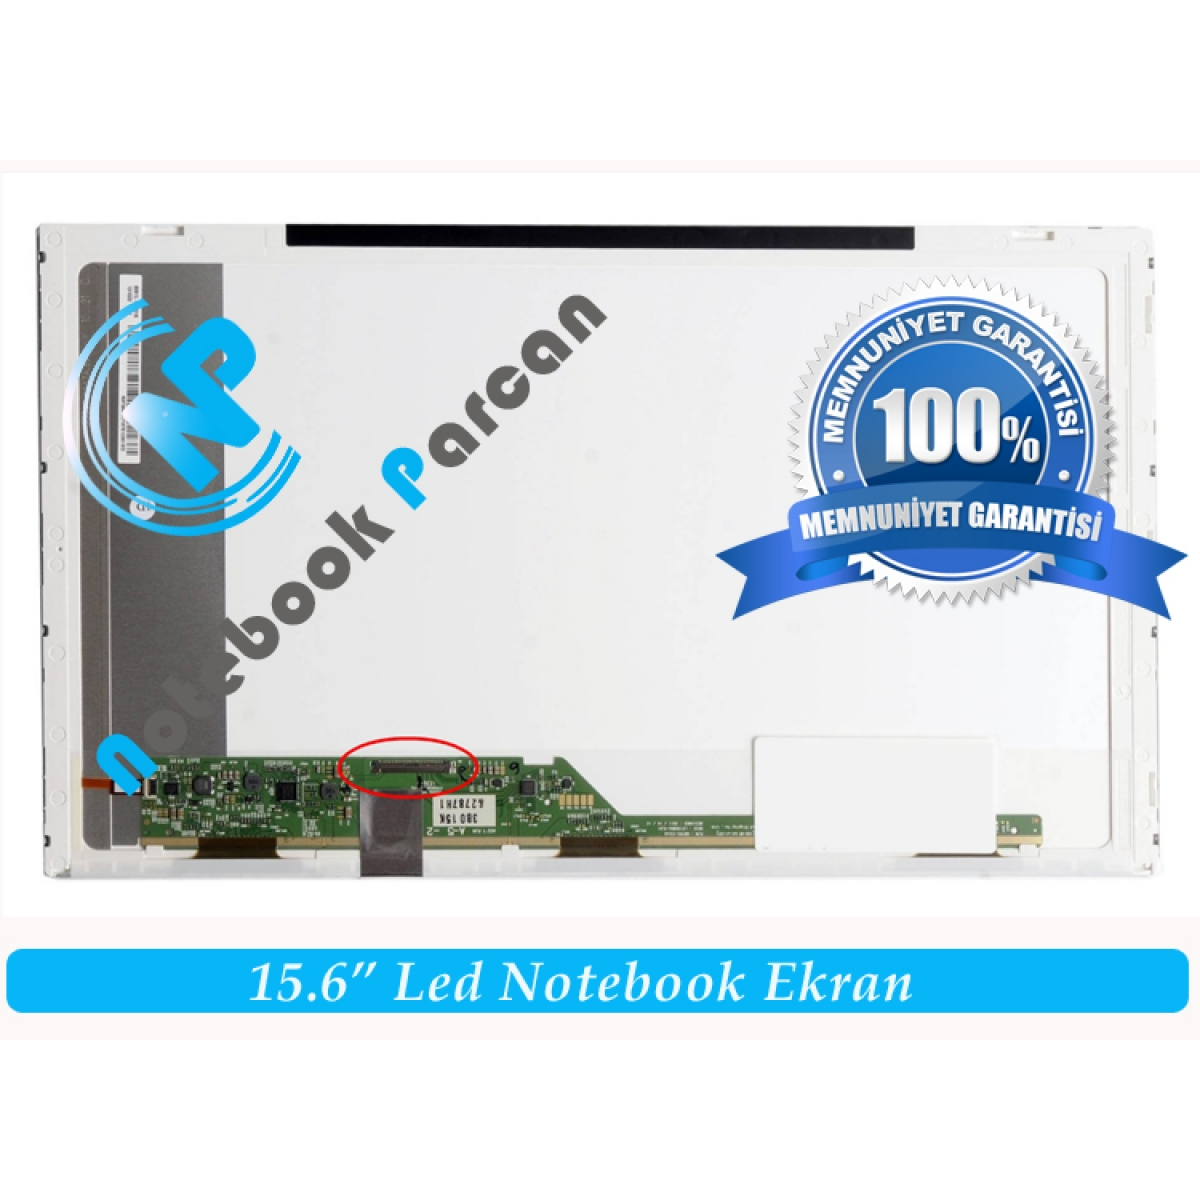 Toshiba Satellite C655-S5082 Ekran 15.6 Led Pan